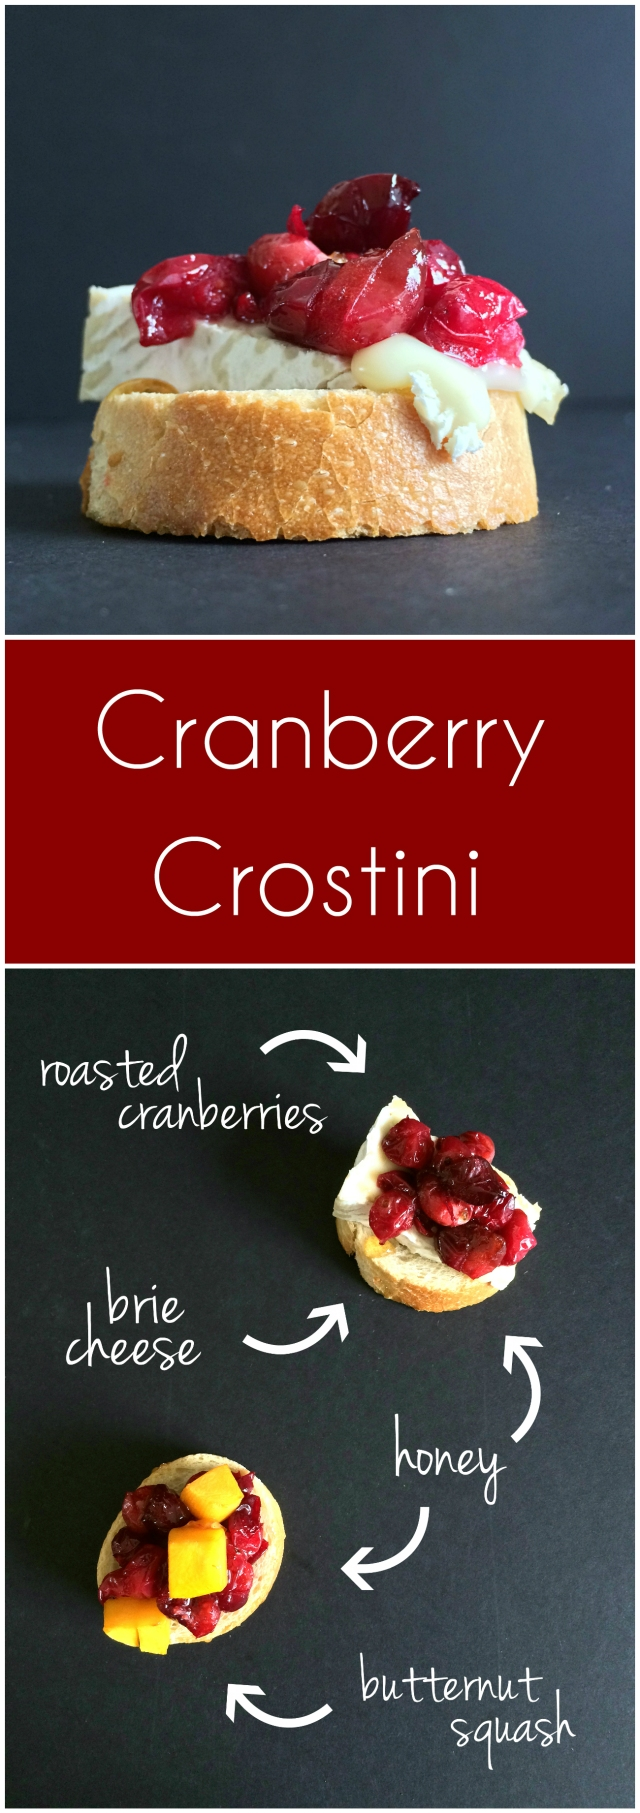 Easy Cranberry Crostini from The Ruby Kitchen